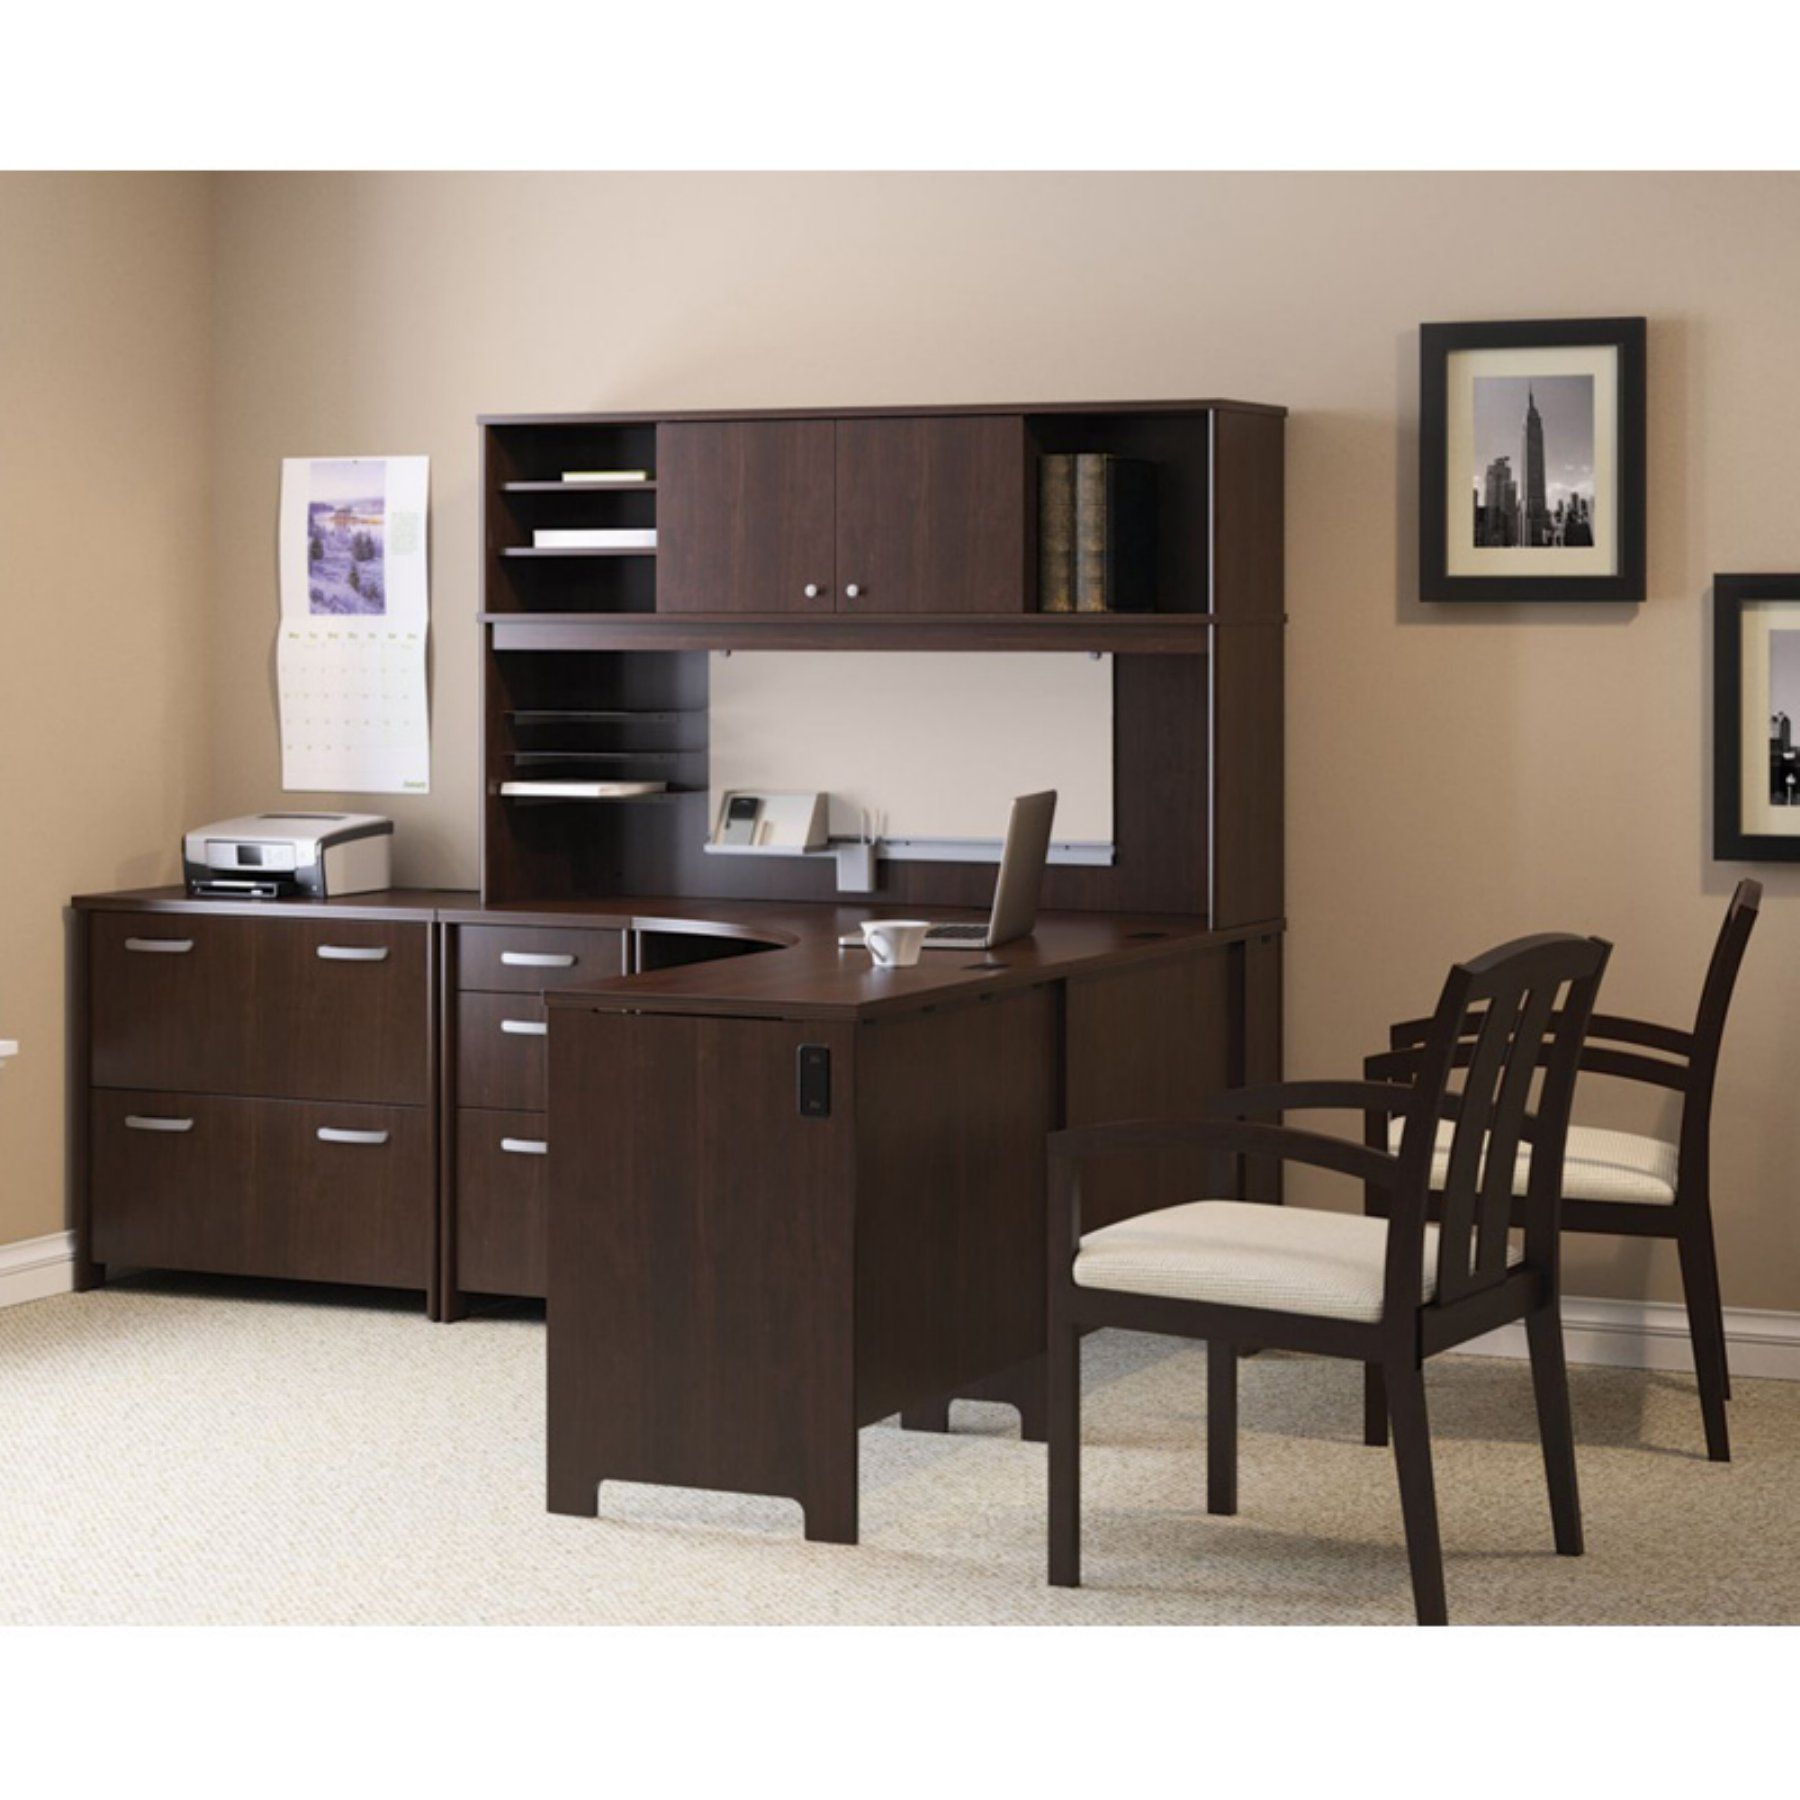 Bush envoy lshaped desk and hutch with optional lateral filing